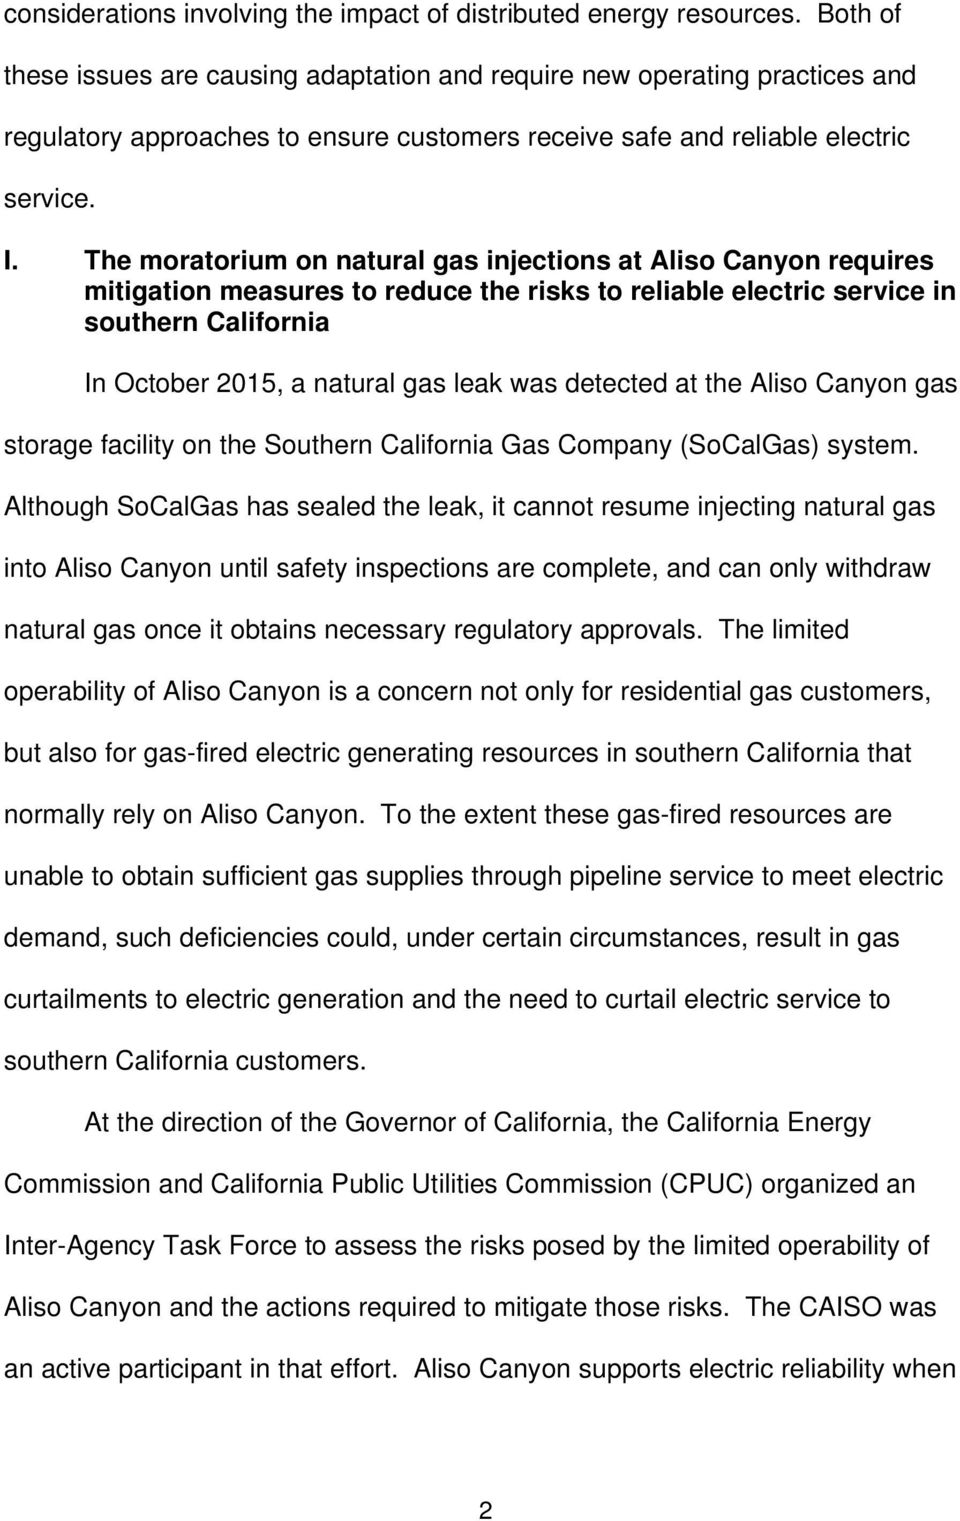 The moratorium on natural gas injections at Aliso Canyon requires mitigation measures to reduce the risks to reliable electric service in southern California In October 2015, a natural gas leak was